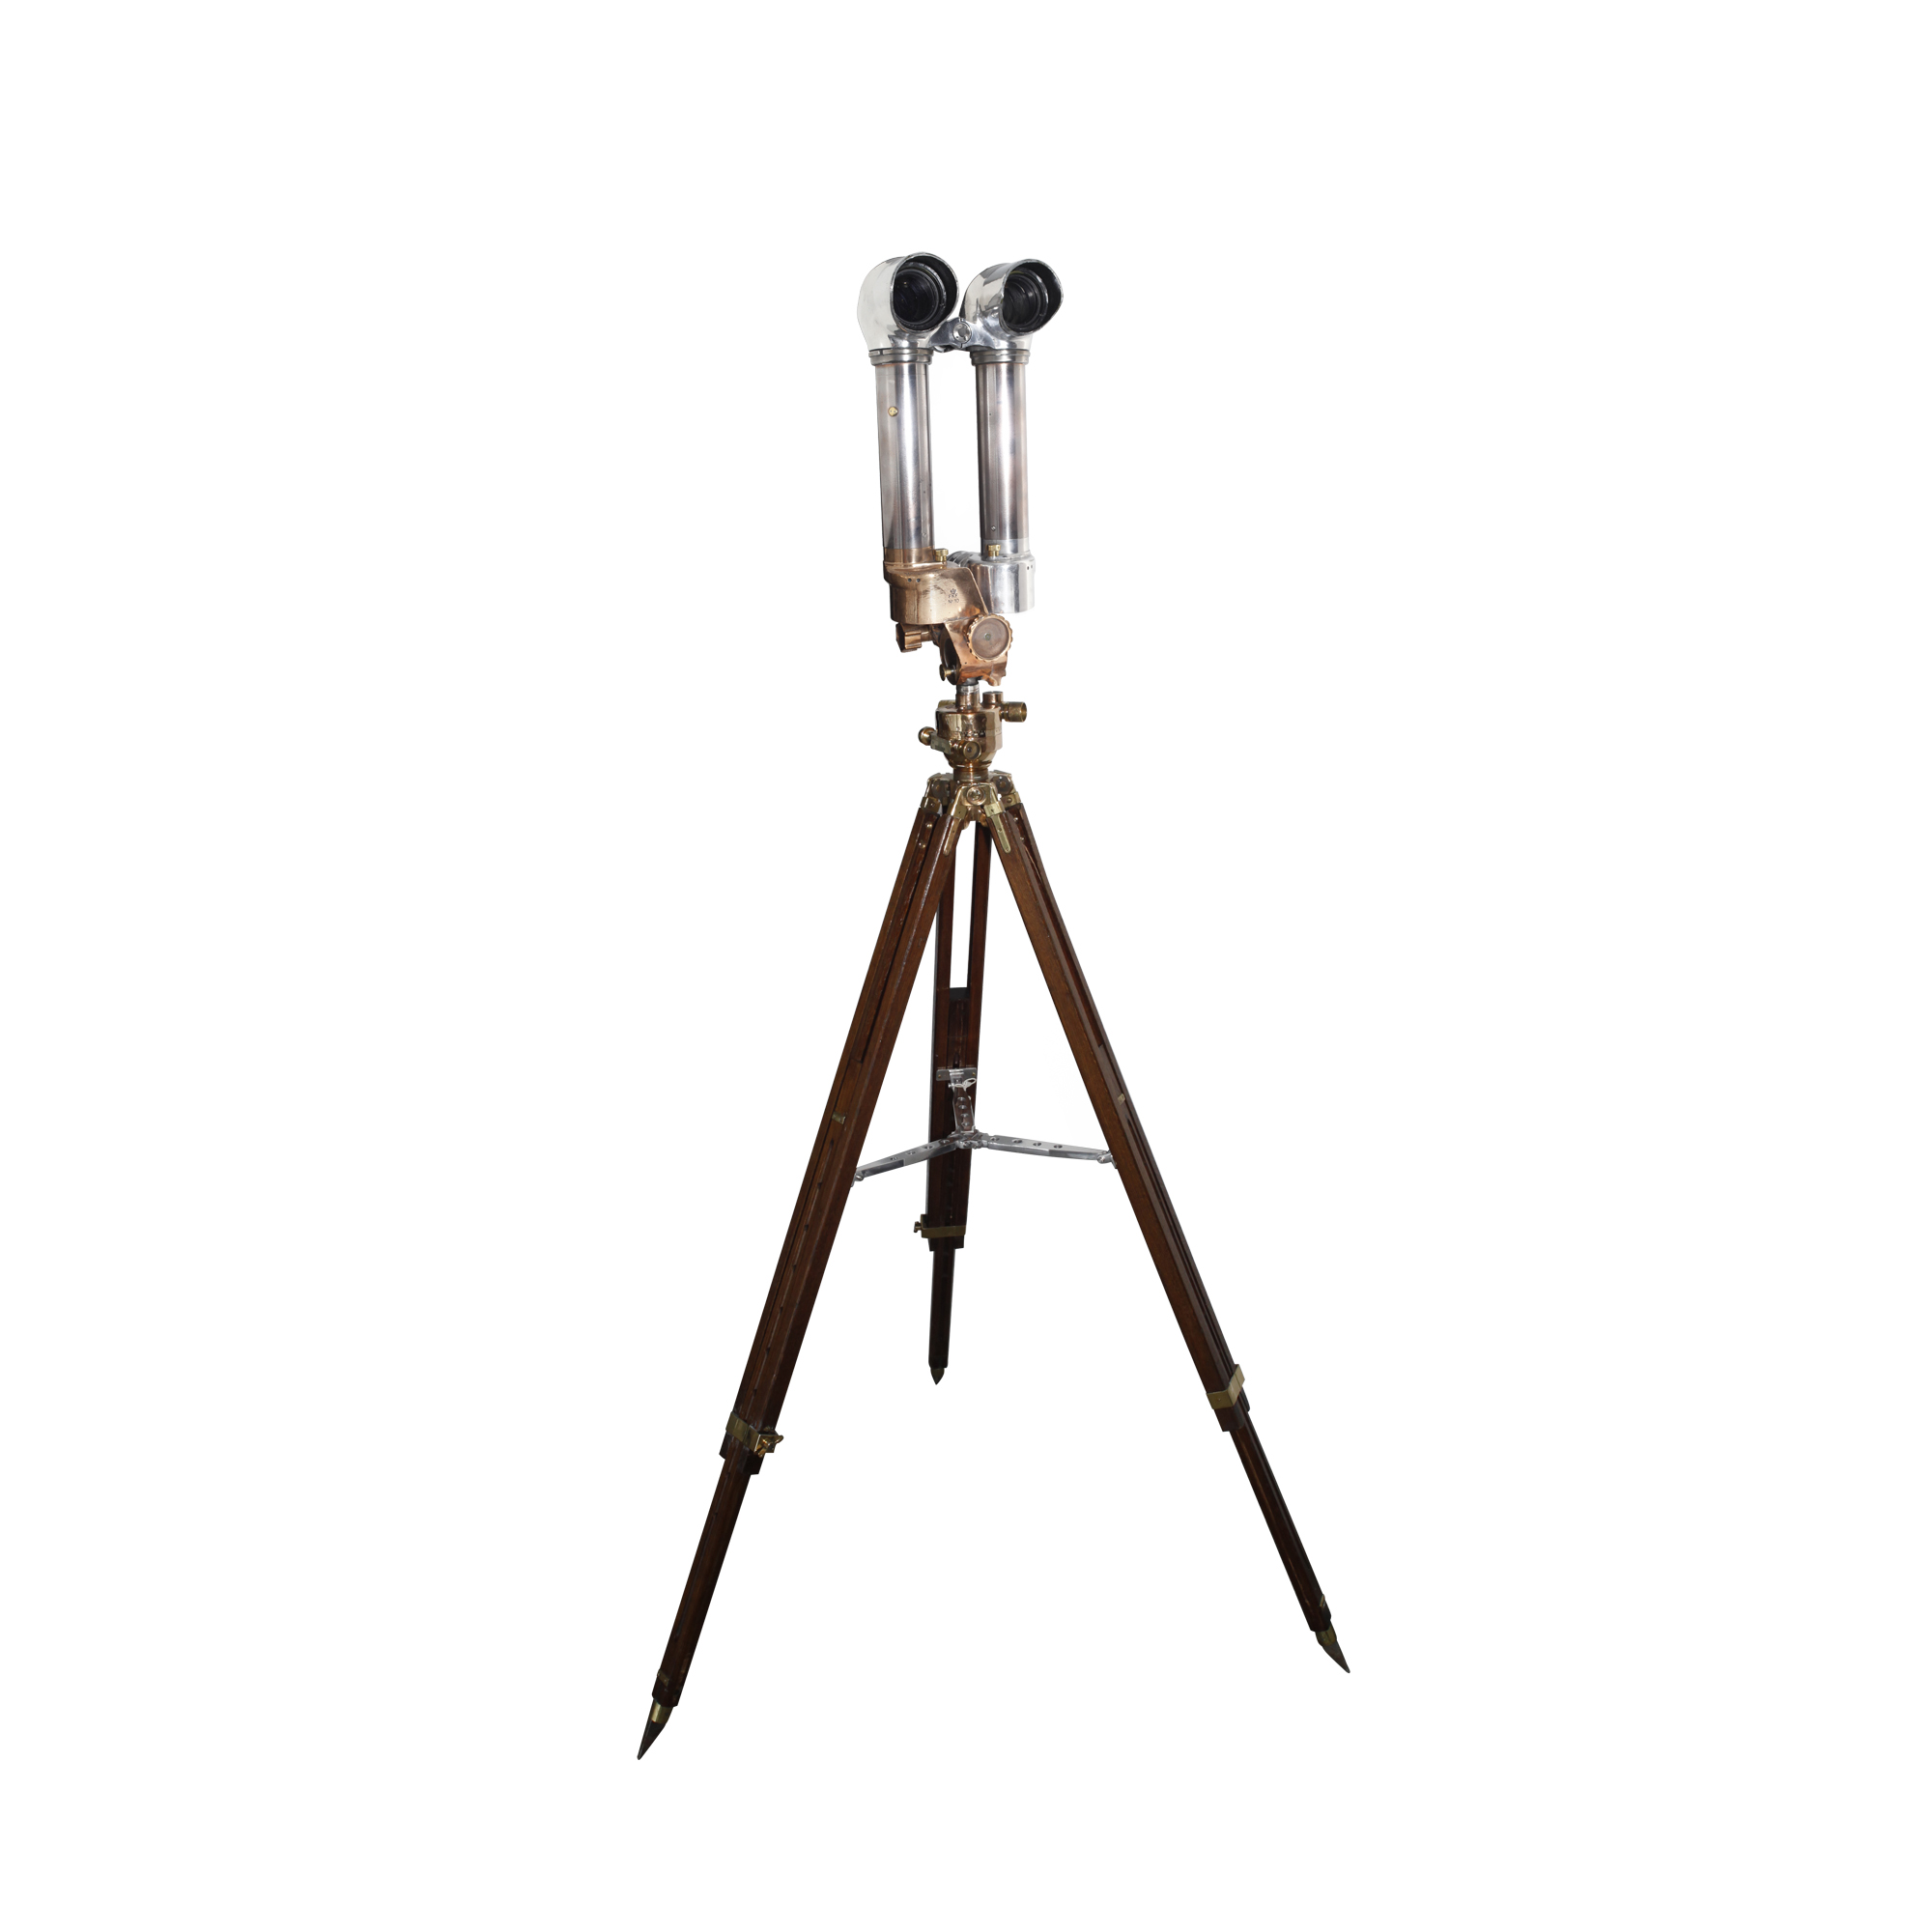 American Wwii Stereoscopic Trench Telescope